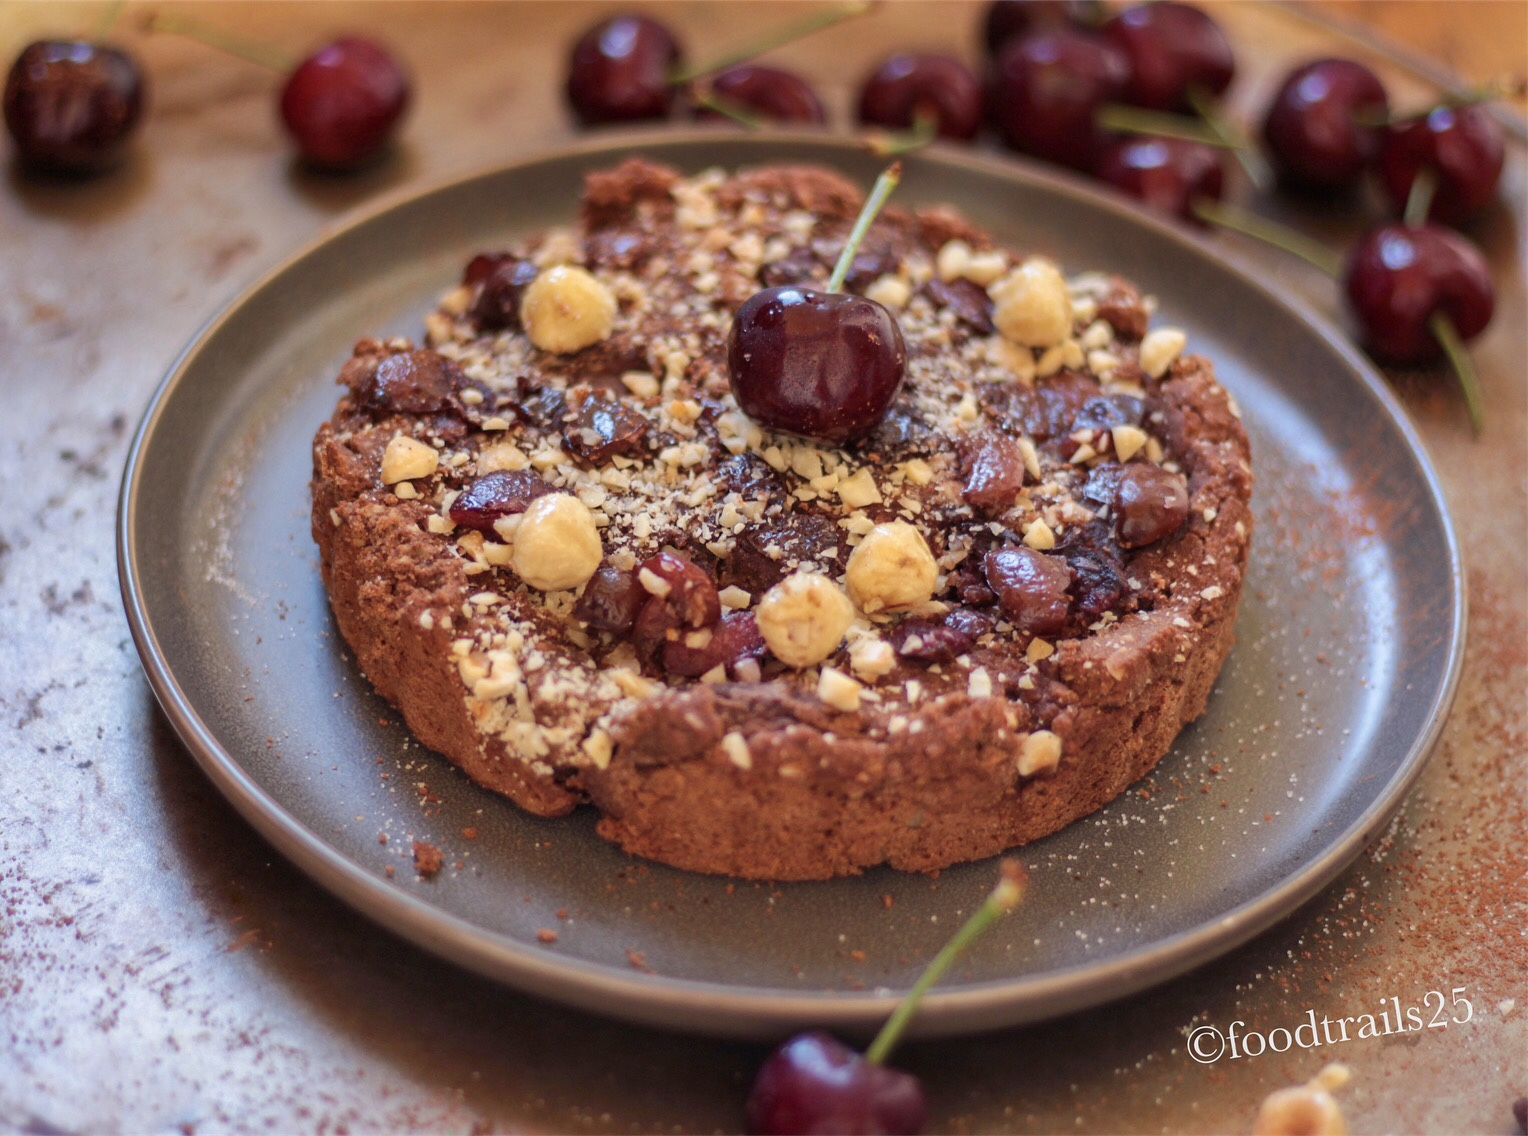 Chocolate Cherry And Hazelnuts Cake (with Coconut Flour) - Food-trails